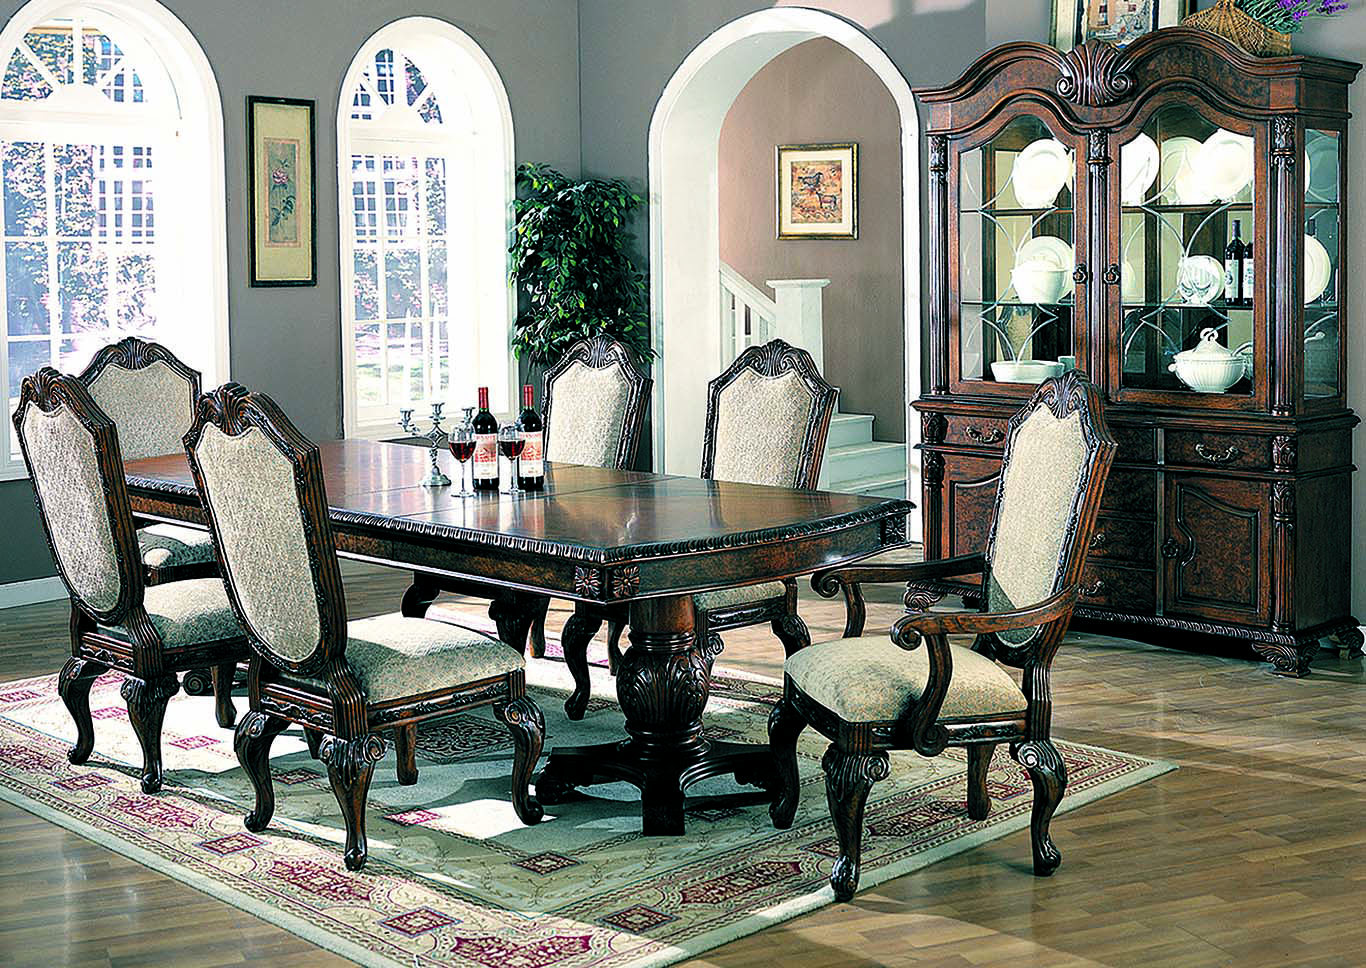 Saint Charles Brown Dining Table w/4 Side Chairs, 2 Arm Chairs, Buffet & Hutch,Coaster Furniture